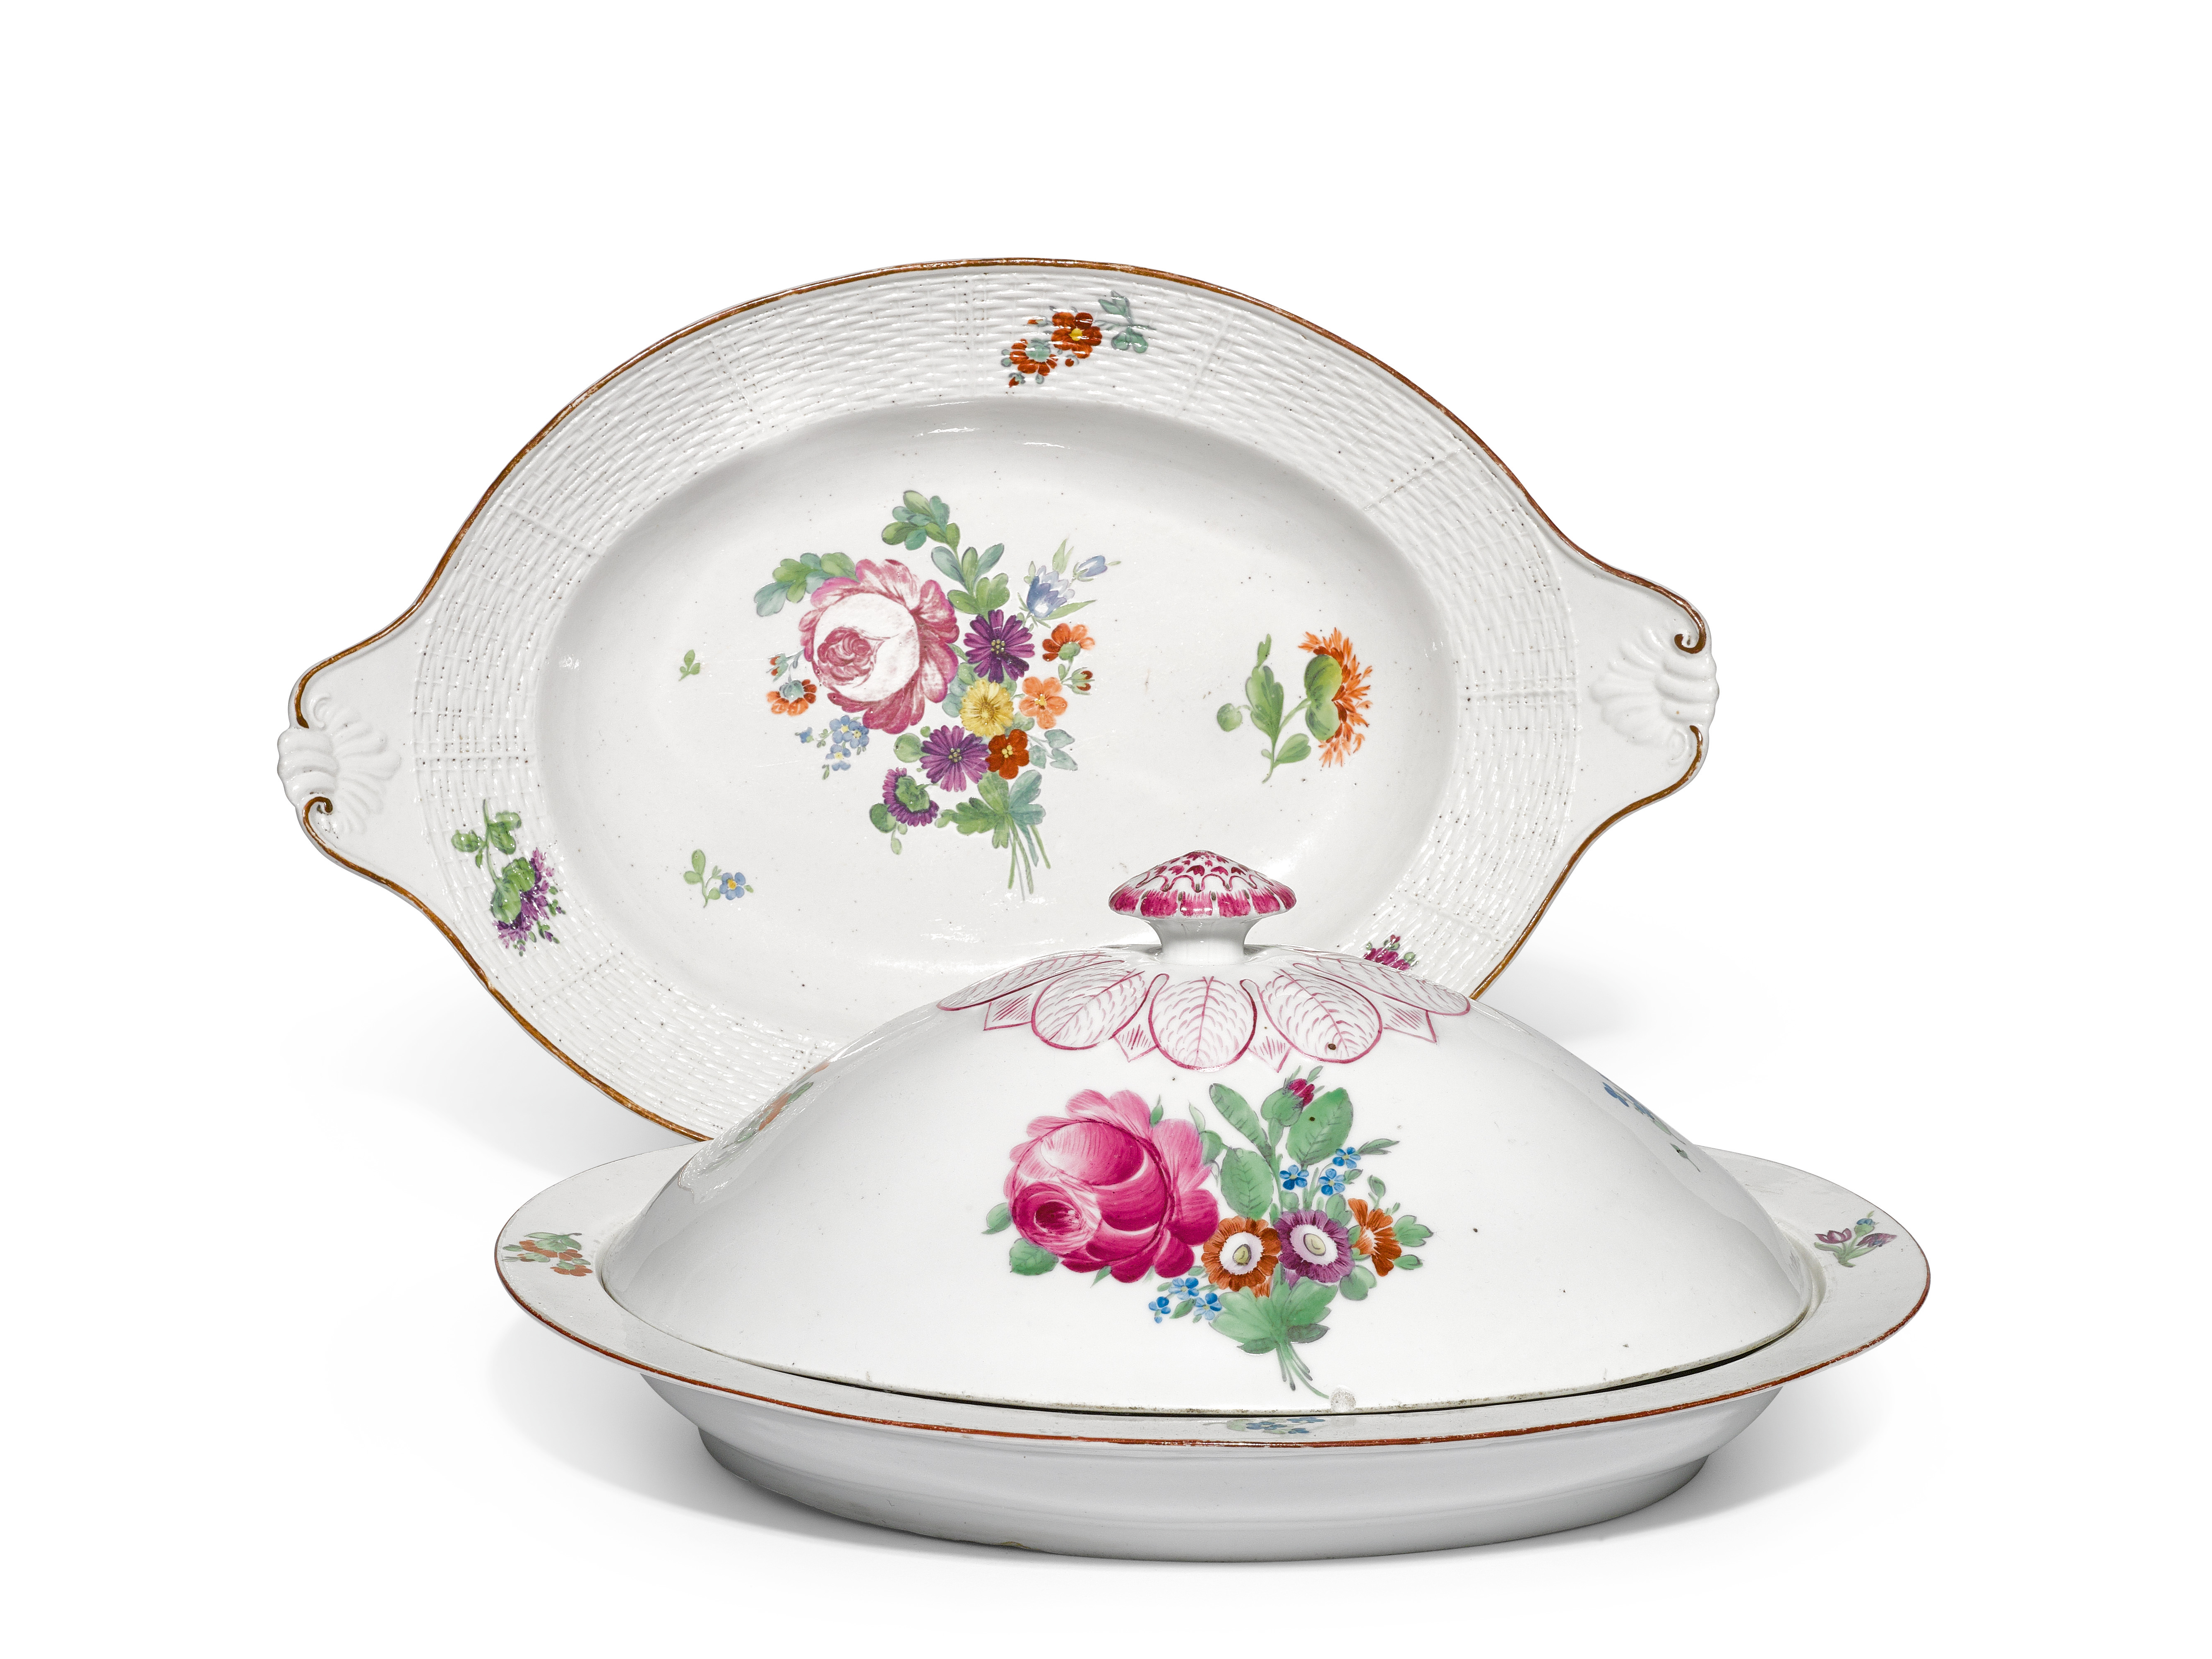 View full screen - View 1 of Lot 344. A porcelain tureen and serving dish from the Everyday service, Imperial Porcelain Factory, St Peterburg, period of Catherine the Great (1762-1796).